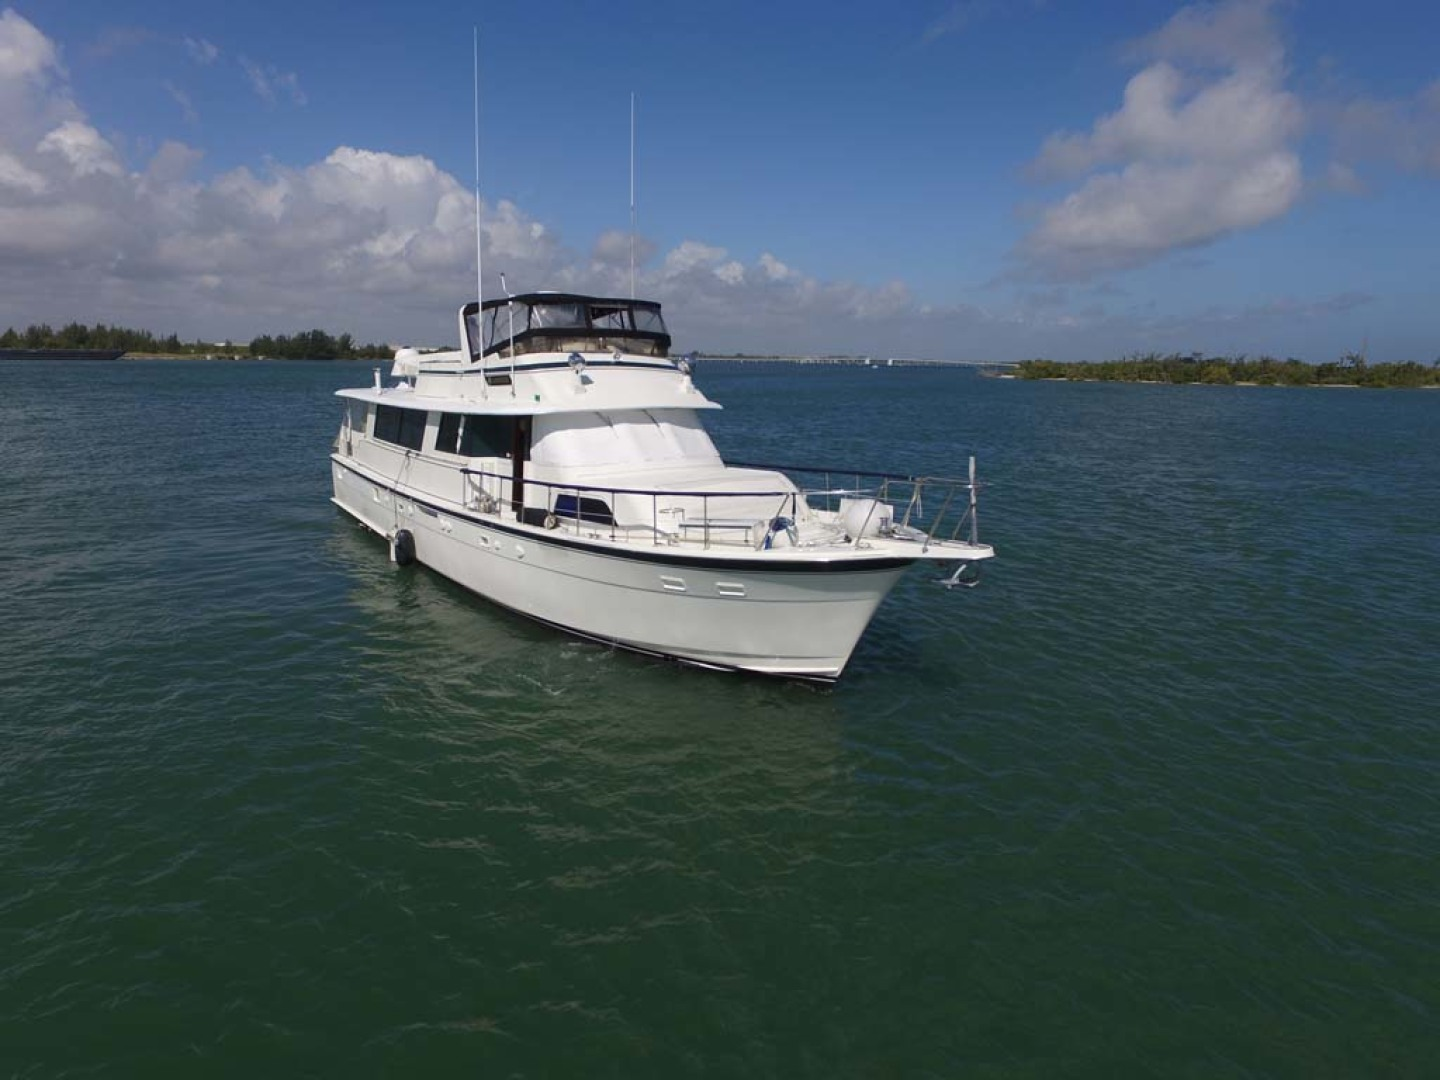 Hatteras-74 Motor Yacht 1981-Pleasurizer Fort Pierce-Florida-United States-Starboard Bow-1122239 | Thumbnail